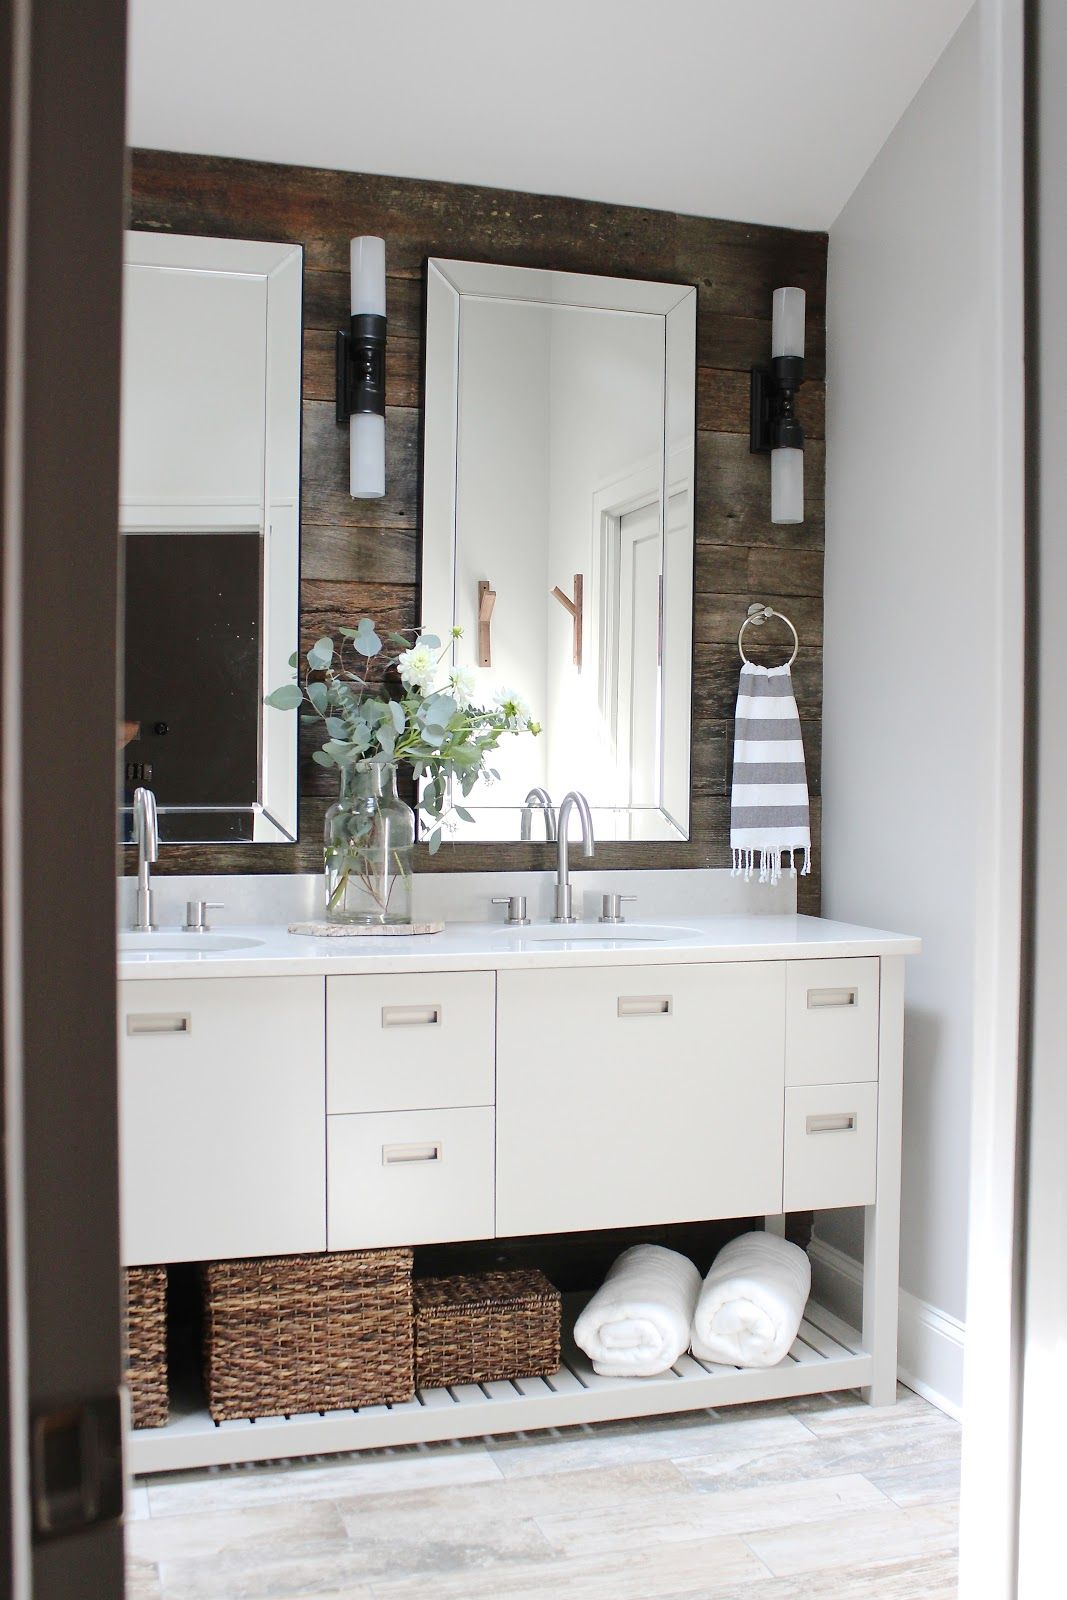 Design Indulgence: BEFORE AND AFTER Modern / Rustic Bathroom Makoever